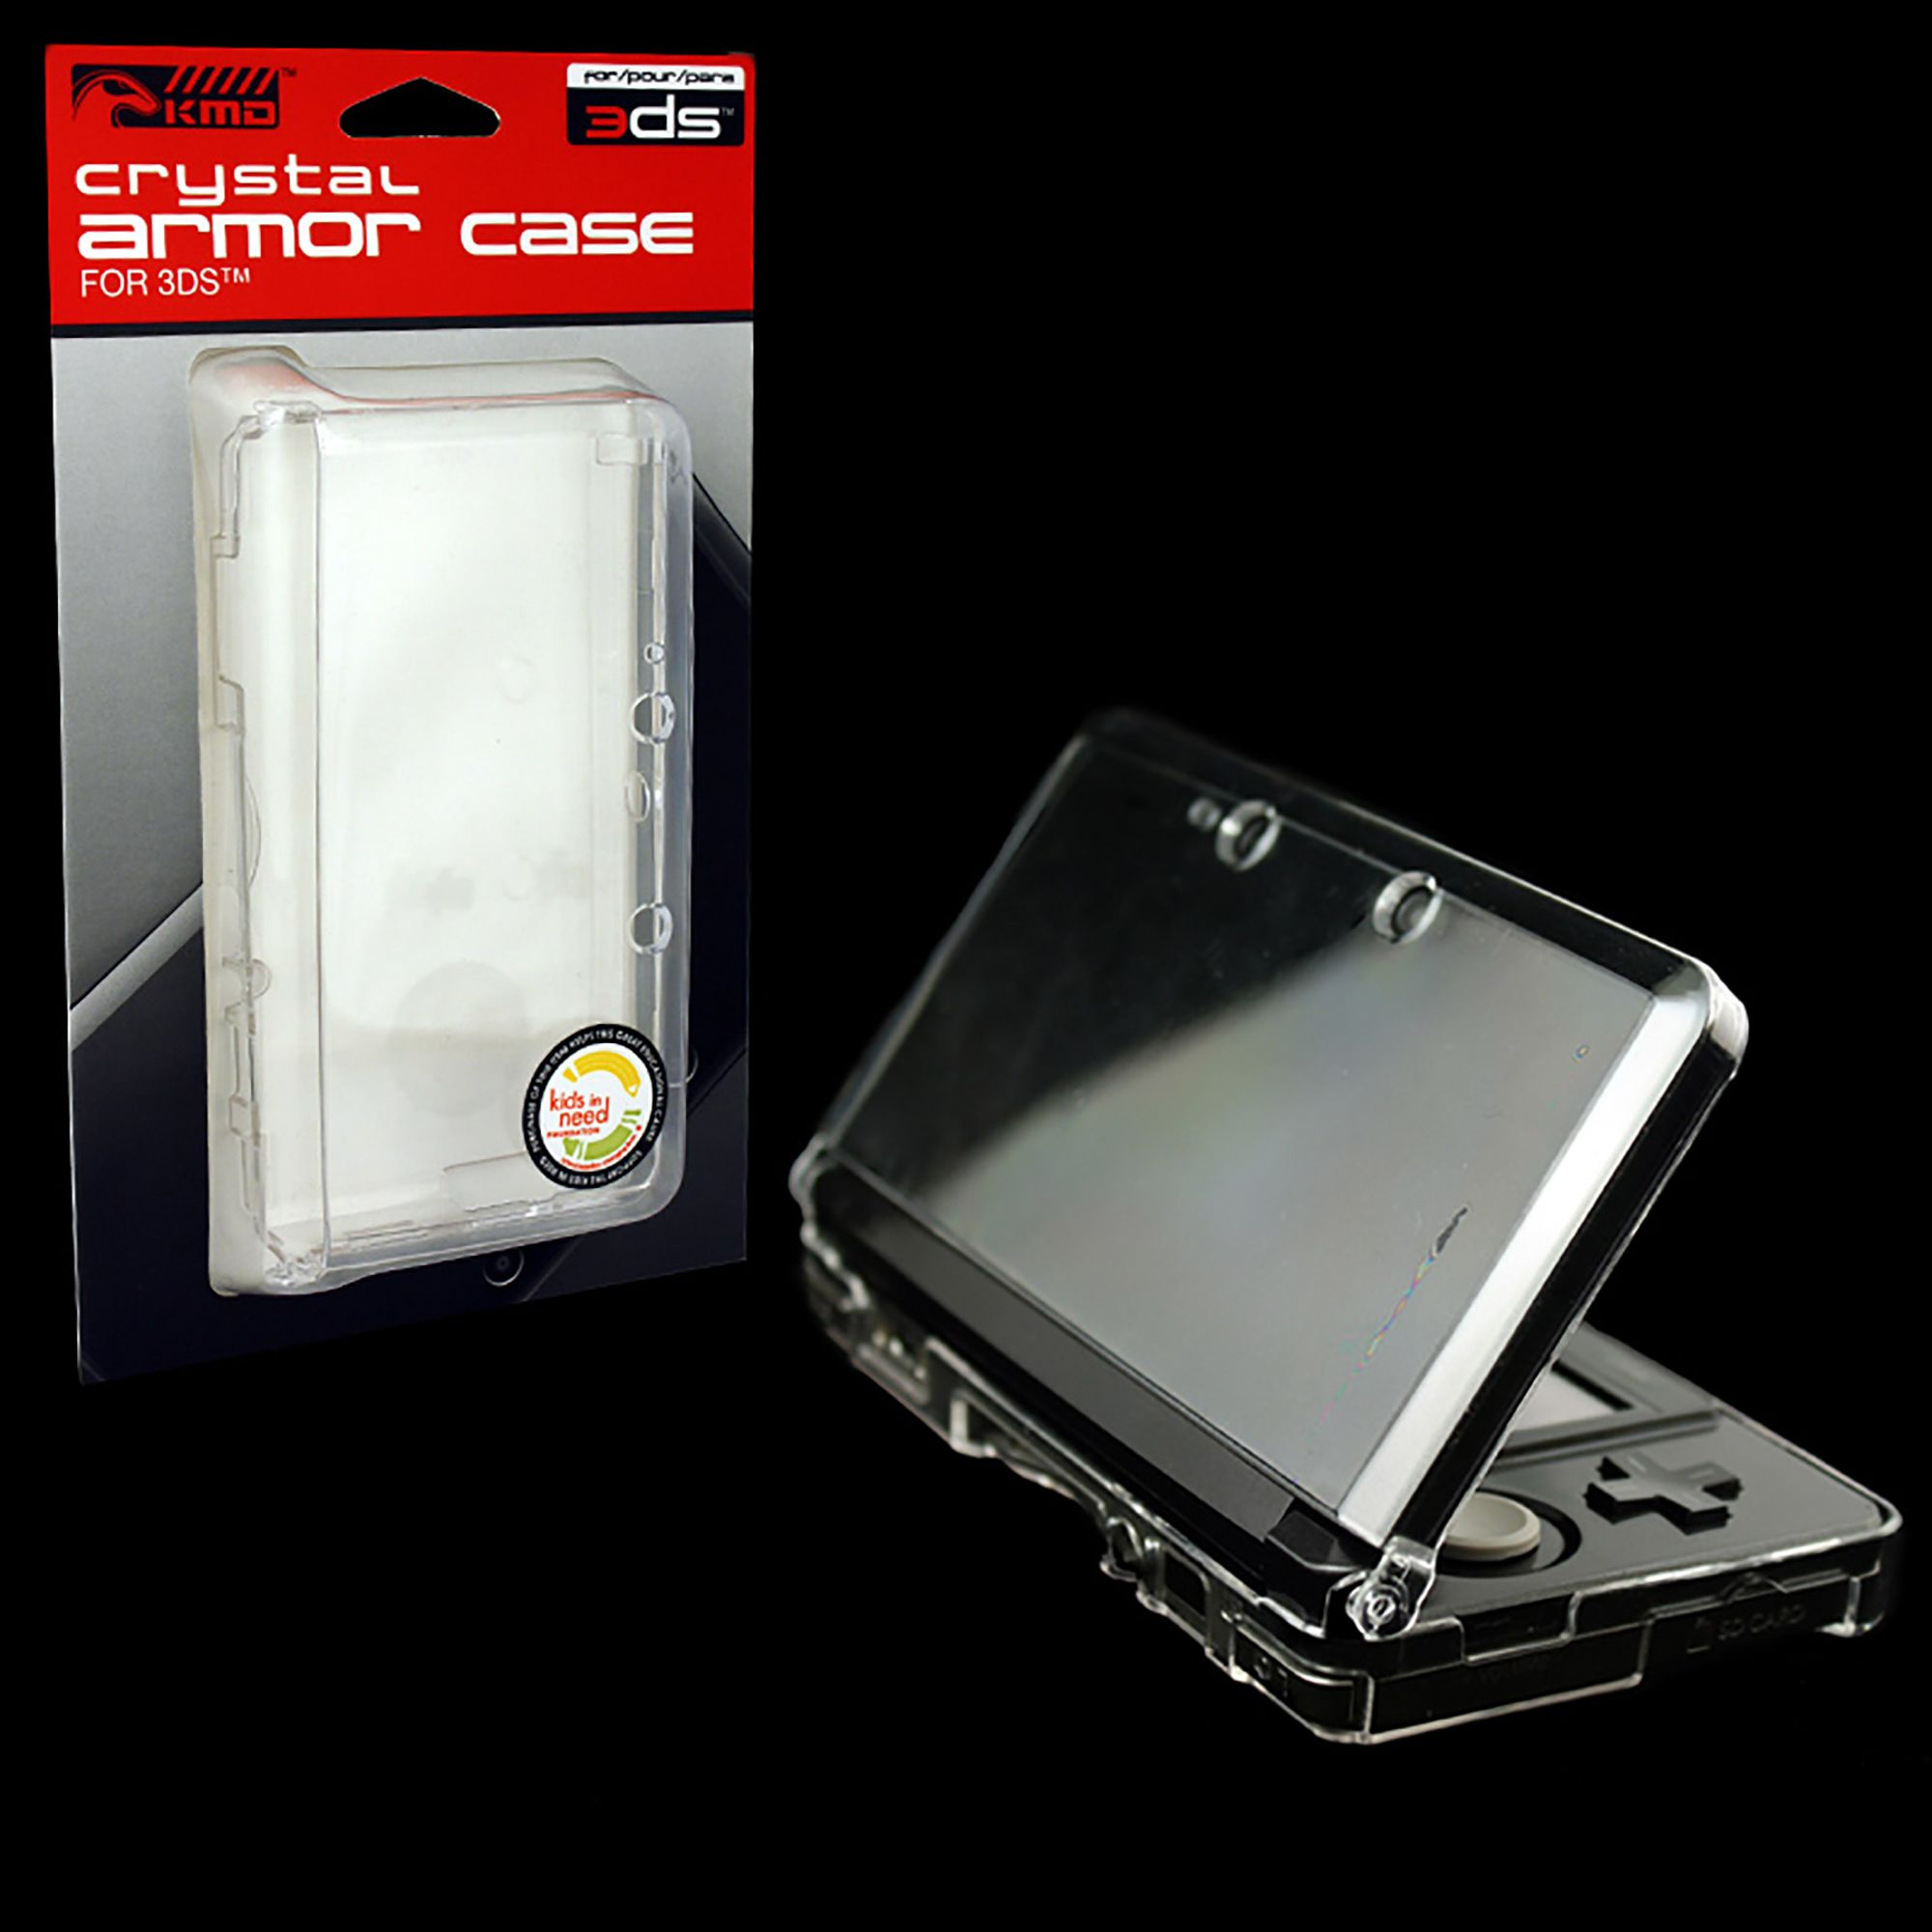 For Nintendo 3DS CLEAR Crystal Protective Armor-Case KMD (Shell Hard Cover)